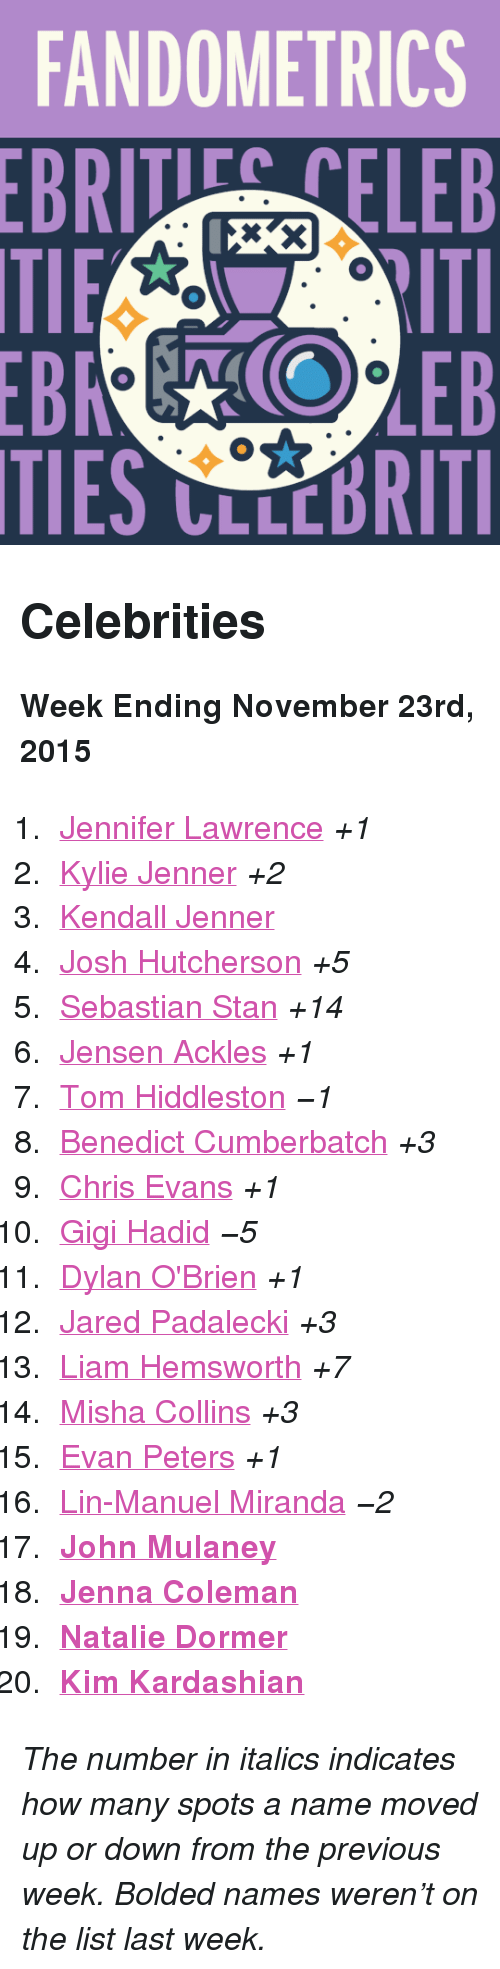 """Dylan O'Brien: FANDOMETRICS  BRTELEB  TIES CLLCBRITI <h2>Celebrities</h2><p><b>Week Ending November 23rd, 2015</b></p><ol><li><a href=""""http://www.tumblr.com/search/jennifer%20lawrence"""">Jennifer Lawrence</a><i>+1</i></li>  <li><a href=""""http://www.tumblr.com/search/kylie%20jenner"""">Kylie Jenner</a><i>+2</i></li>  <li><a href=""""http://www.tumblr.com/search/kendall%20jenner"""">Kendall Jenner</a></li>  <li><a href=""""http://www.tumblr.com/search/josh%20hutcherson"""">Josh Hutcherson</a><i>+5</i></li>  <li><a href=""""http://www.tumblr.com/search/sebastian%20stan"""">Sebastian Stan</a><i>+14</i></li>  <li><a href=""""http://www.tumblr.com/search/jensen%20ackles"""">Jensen Ackles</a><i>+1</i></li>  <li><a href=""""http://www.tumblr.com/search/tom%20hiddleston"""">Tom Hiddleston</a><i>−1</i></li>  <li><a href=""""http://www.tumblr.com/search/benedict%20cumberbatch"""">Benedict Cumberbatch</a><i>+3</i></li>  <li><a href=""""http://www.tumblr.com/search/chris%20evans"""">Chris Evans</a><i>+1</i></li>  <li><a href=""""http://www.tumblr.com/search/gigi%20hadid"""">Gigi Hadid</a><i>−5</i></li>  <li><a href=""""http://www.tumblr.com/search/dylan%20o'brien"""">Dylan O'Brien</a><i>+1</i></li>  <li><a href=""""http://www.tumblr.com/search/jared%20padalecki"""">Jared Padalecki</a><i>+3</i><br/></li>  <li><a href=""""http://www.tumblr.com/search/liam%20hemsworth"""">Liam Hemsworth</a><i>+7</i></li>  <li><a href=""""http://www.tumblr.com/search/misha%20collins"""">Misha Collins</a><i>+3</i></li>  <li><a href=""""http://www.tumblr.com/search/evan%20peters"""">Evan Peters</a><i>+1</i></li>  <li><a href=""""http://www.tumblr.com/search/lin%20manuel%20miranda"""">Lin-Manuel Miranda</a><i>−2</i></li>  <li><a href=""""http://www.tumblr.com/search/john%20mulaney""""><b>John Mulaney</b></a></li>  <li><a href=""""http://www.tumblr.com/search/jenna%20coleman""""><b>Jenna Coleman</b></a></li>  <li><a href=""""http://www.tumblr.com/search/natalie%20dormer""""><b>Natalie Dormer</b></a></li>  <li><a href=""""http://www.tumblr.com/search/kim%20kardashian""""><b>Kim Kardashian</b></a></li></ol><p><i>The """